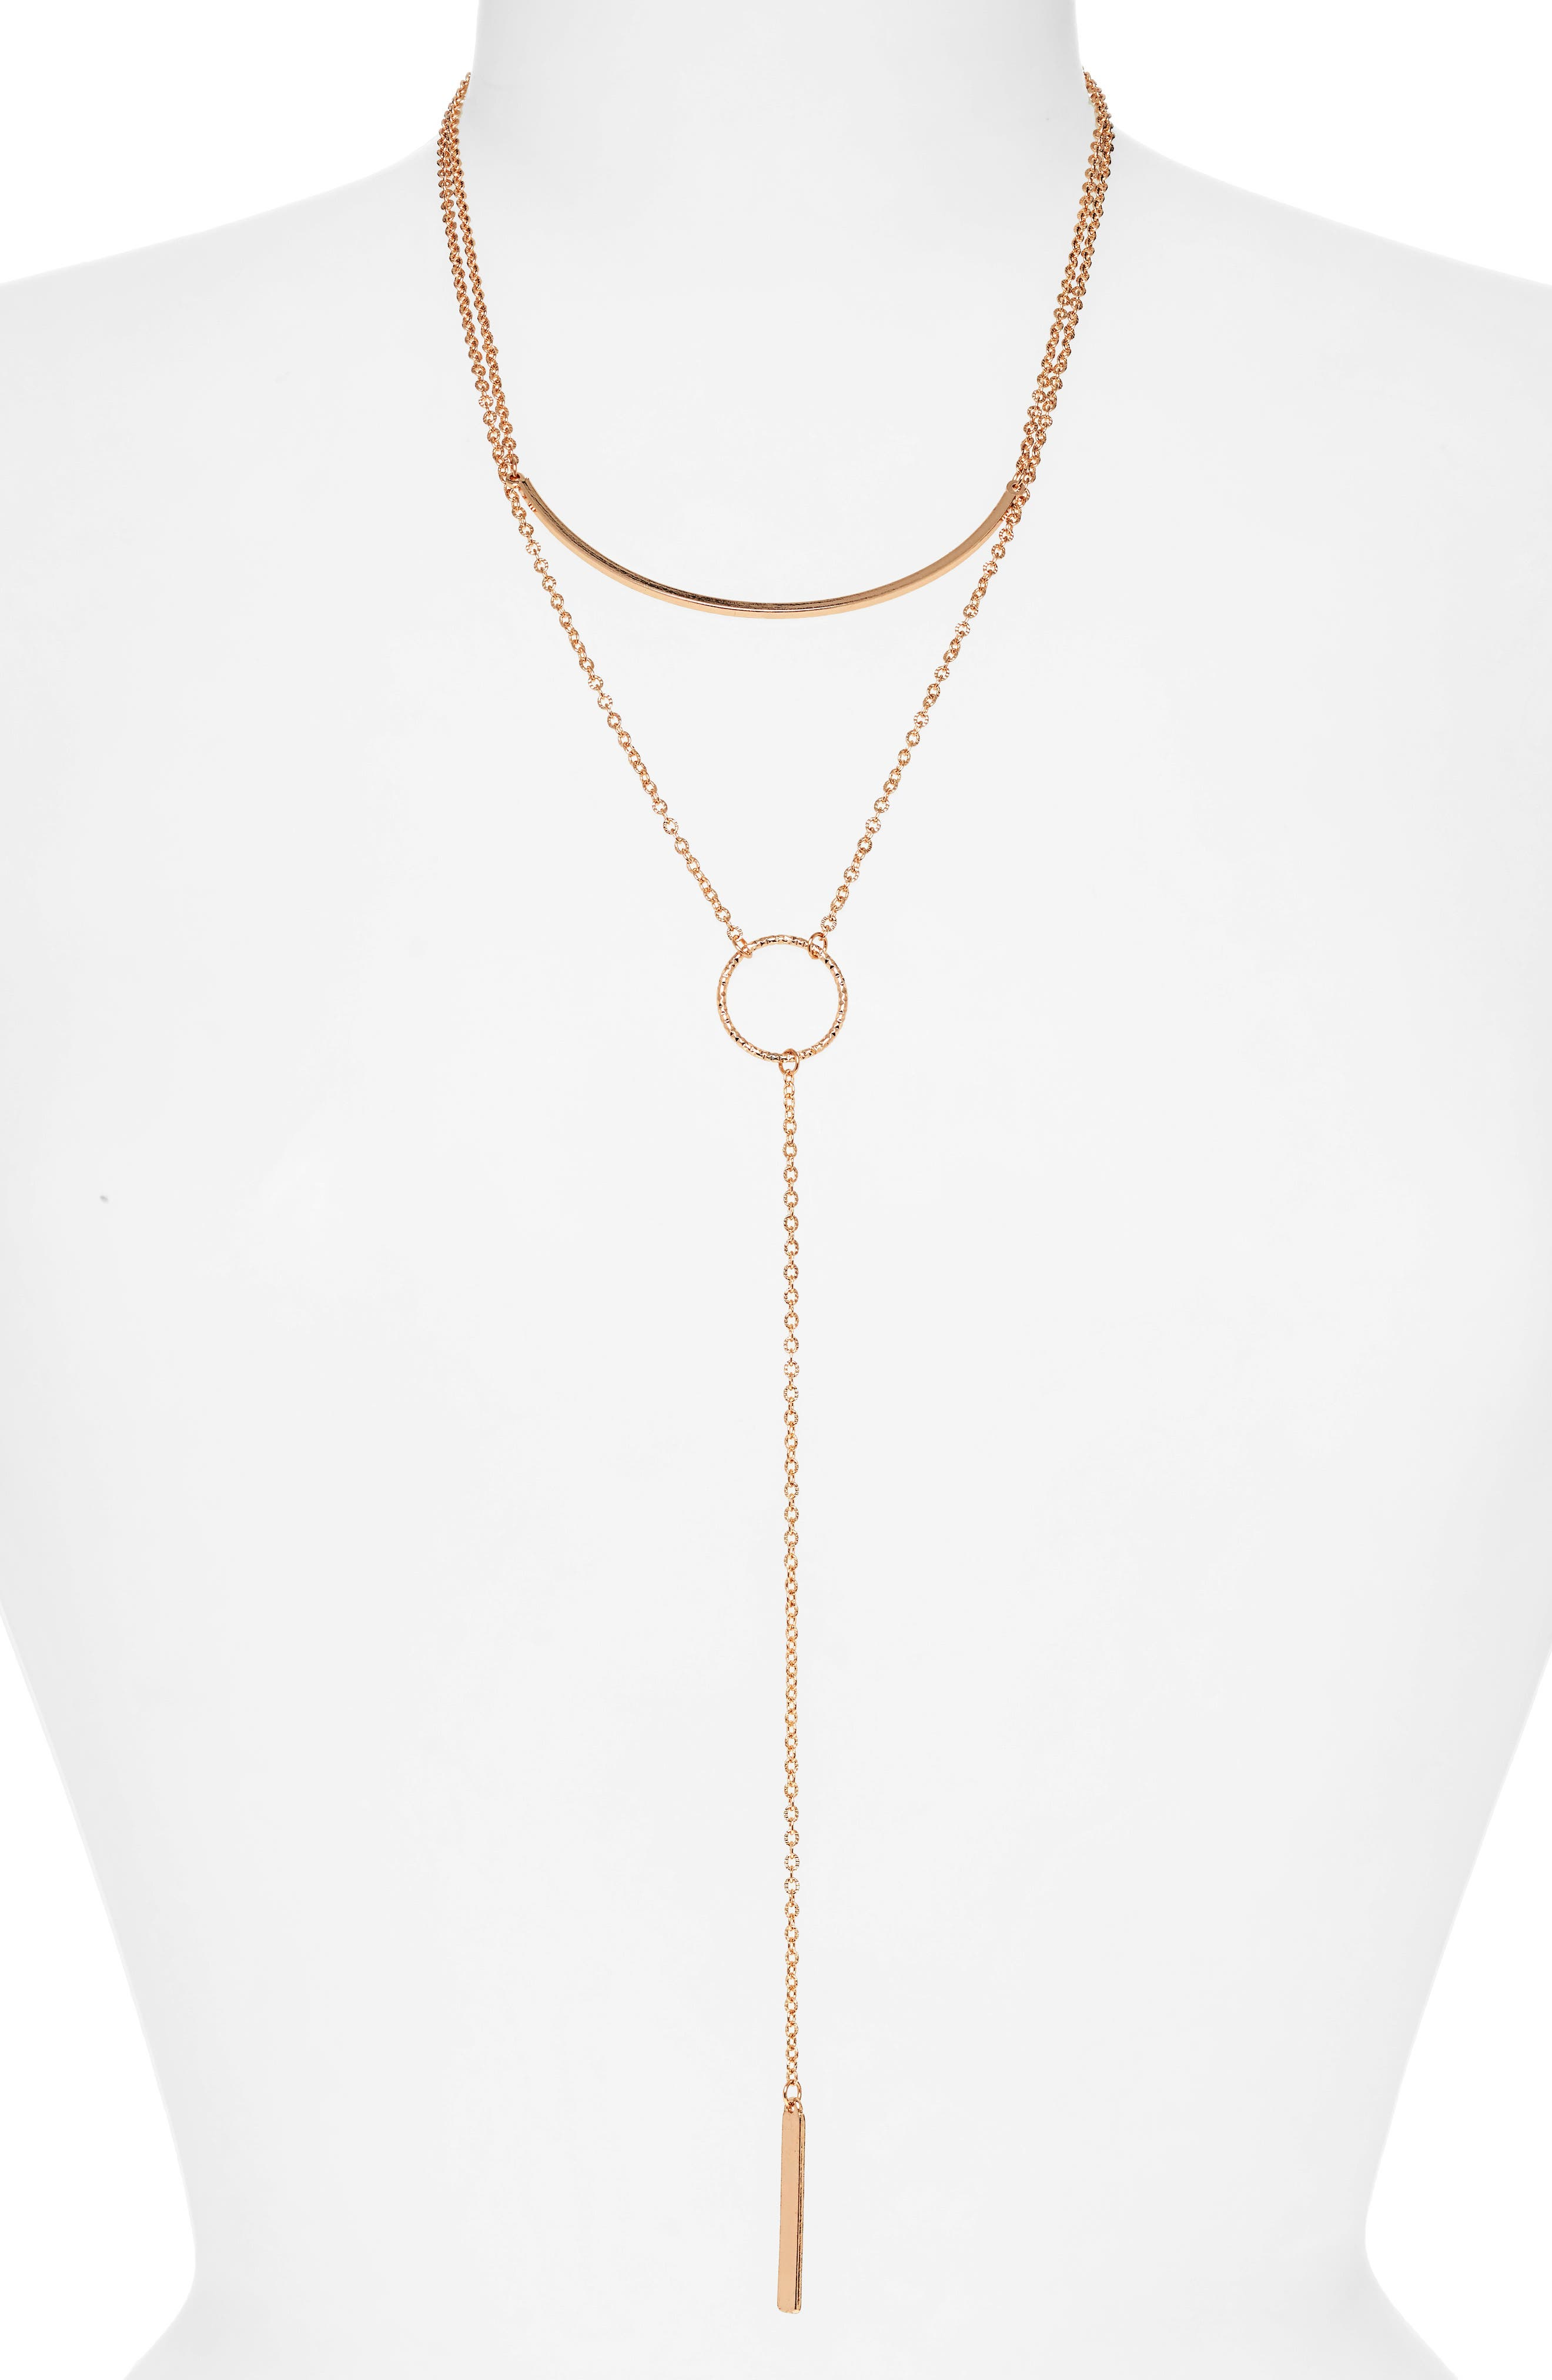 PANACEA Bar Circle Layered Y-Necklace in Gold